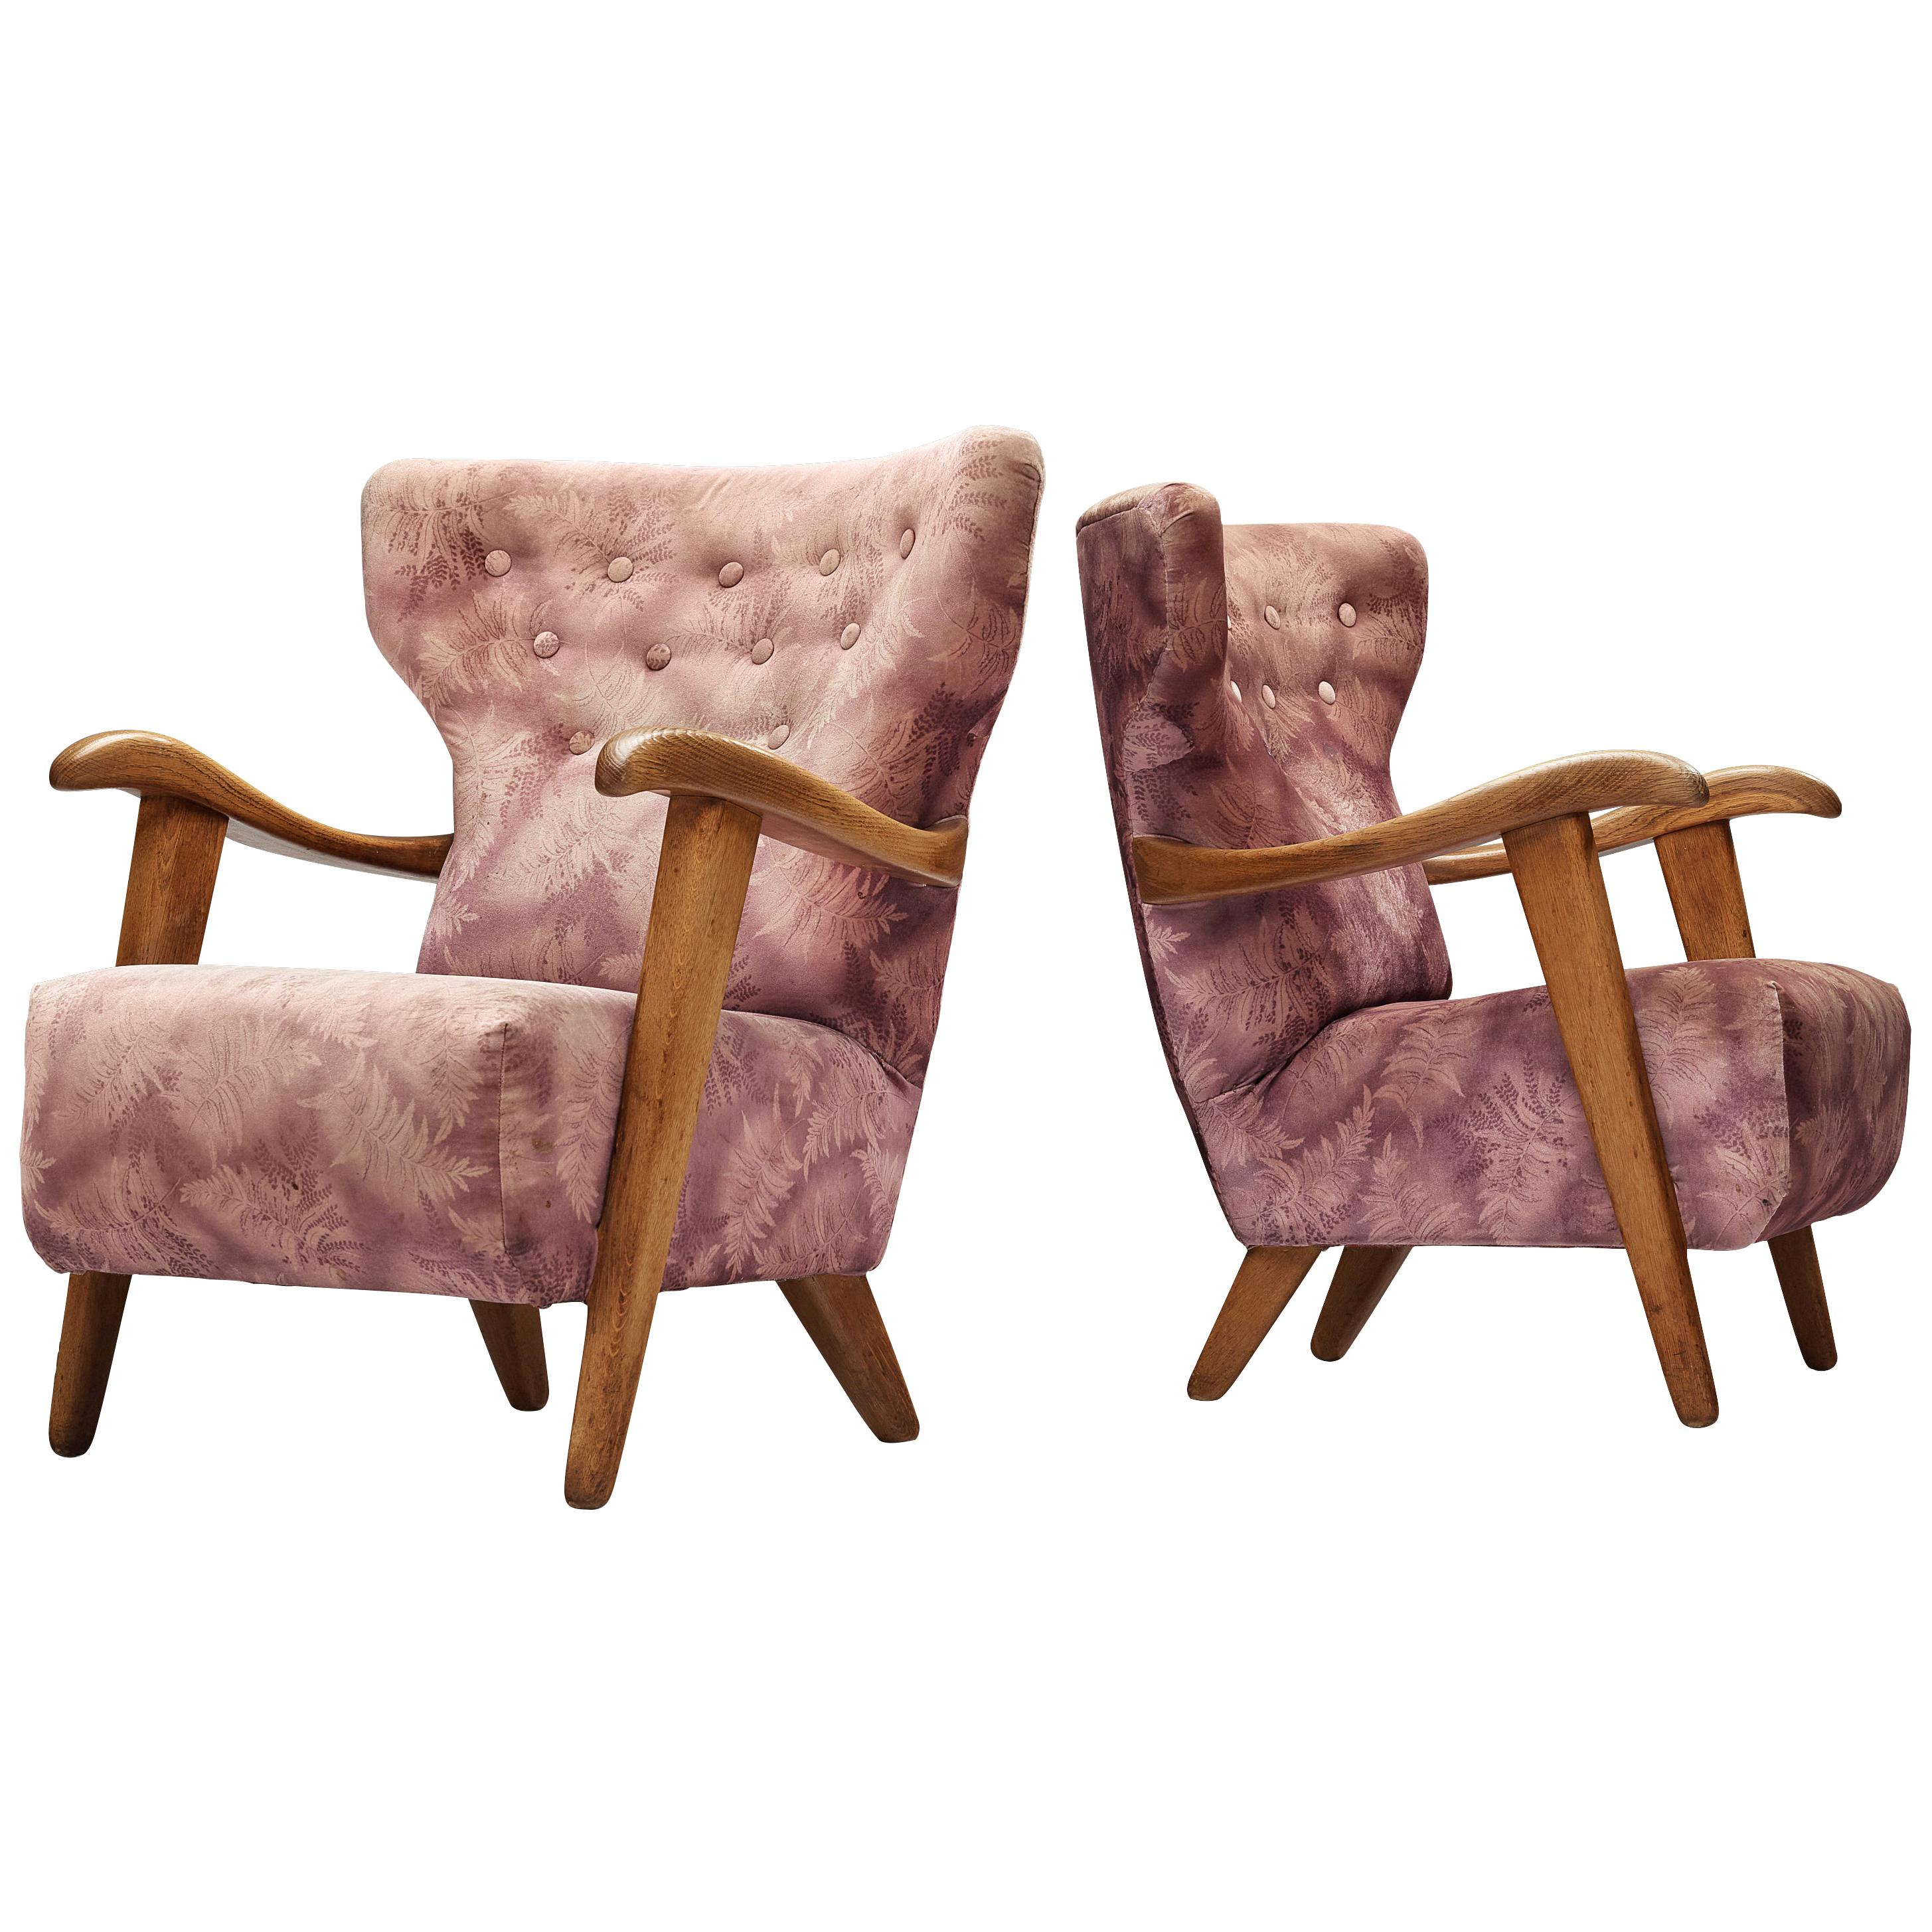 Customizable French Lounge Chairs in Oak and Fabric Upholstery